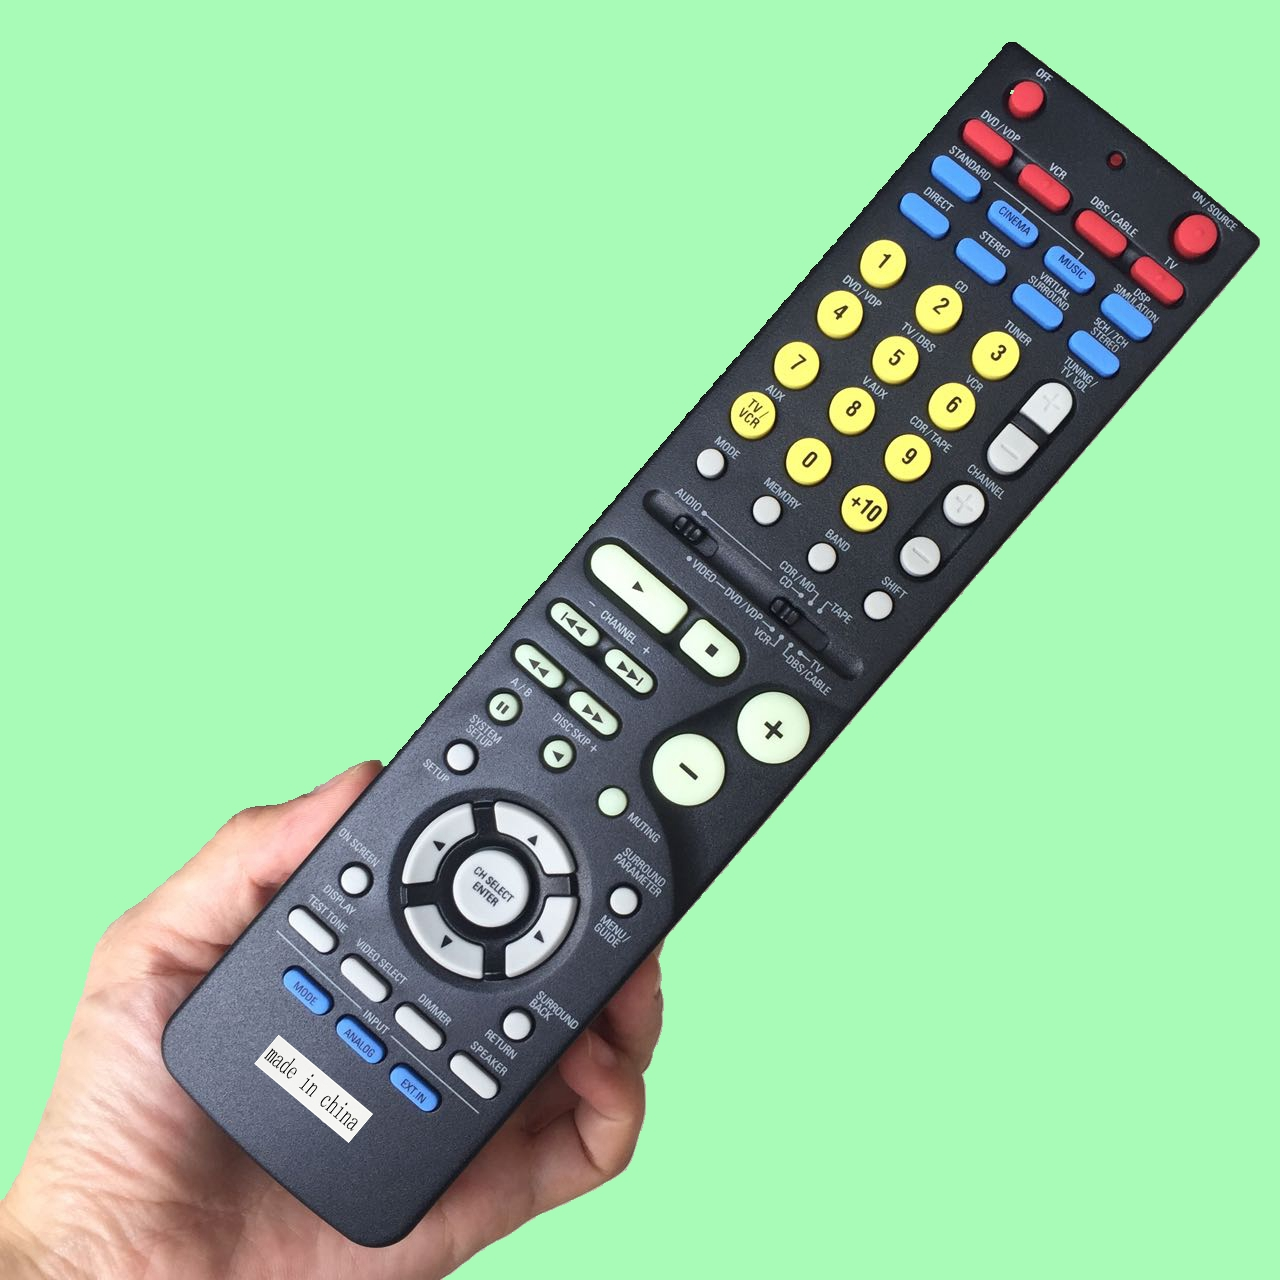 General Remote Control Fit for RC-1145 1146 RC-1147 DHT591BA for Denon AV Receiver